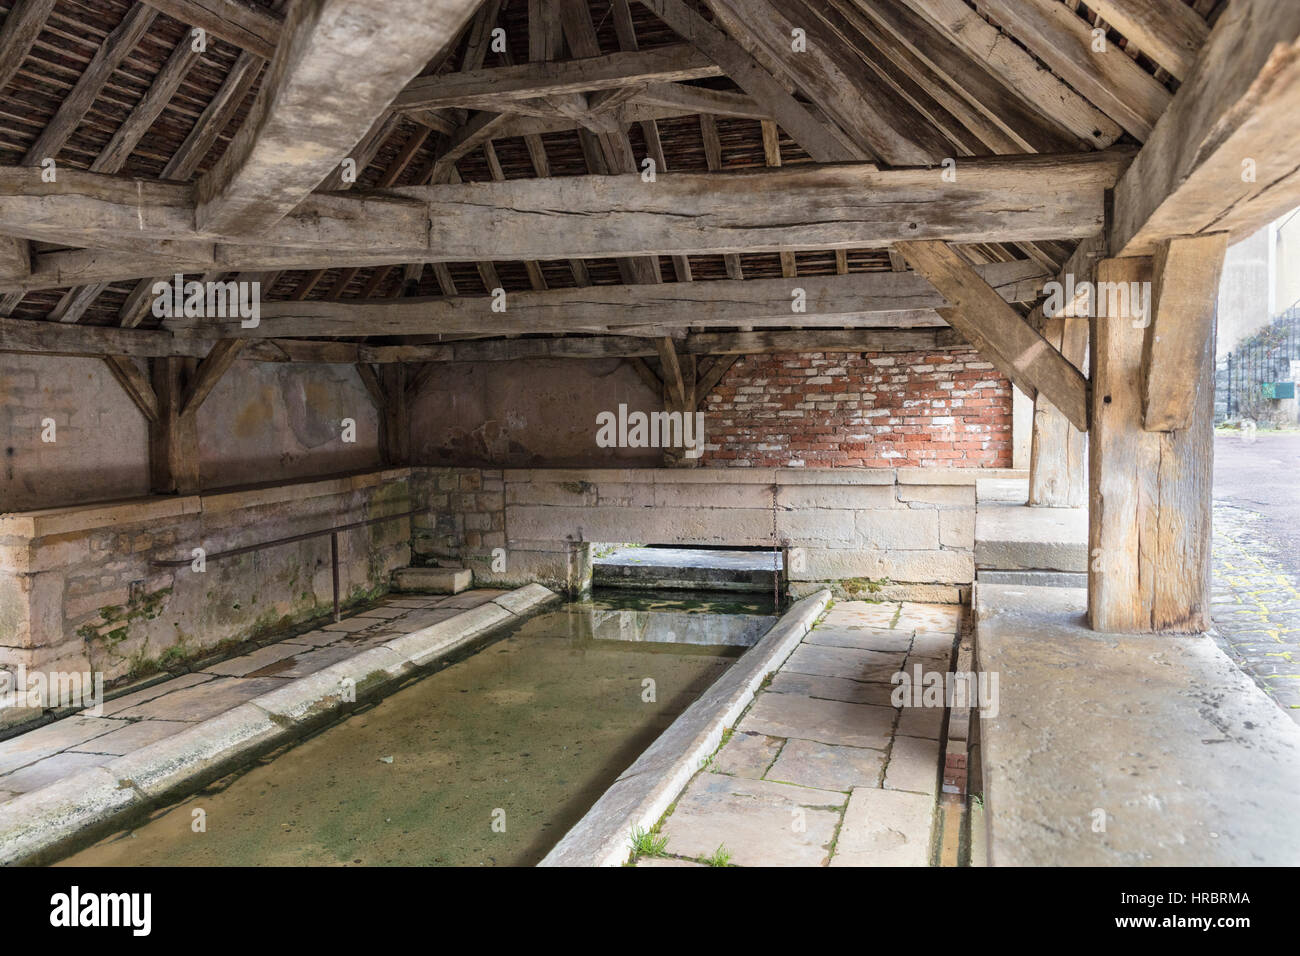 Wood beamed covered lavoir (communal washing pavilion), Domecy, Burgundy, France - Stock Image